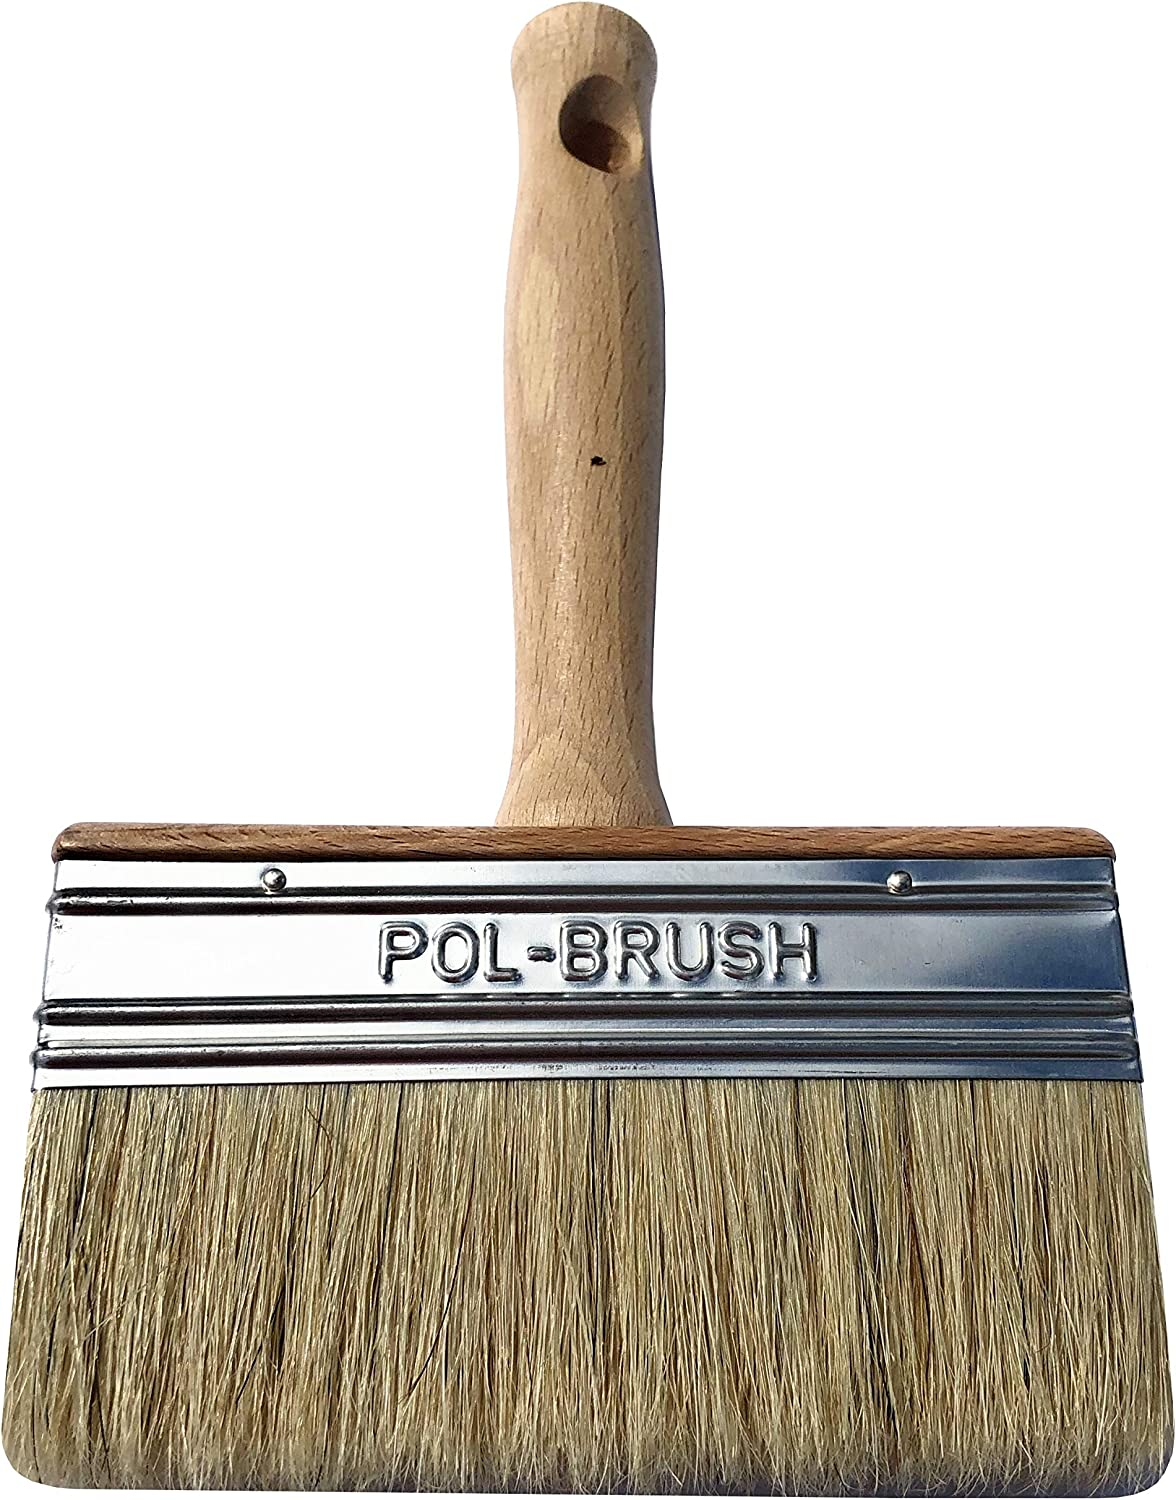 """5 inch European Professional Stain Block Paint Brush - Natural Bristle/Wood Handle - for Paint Job with Acrylic, Chalk, Oil Based, Latex, Stain, Watercolor, Wax, Varnish Paints. (5"""" Block)"""